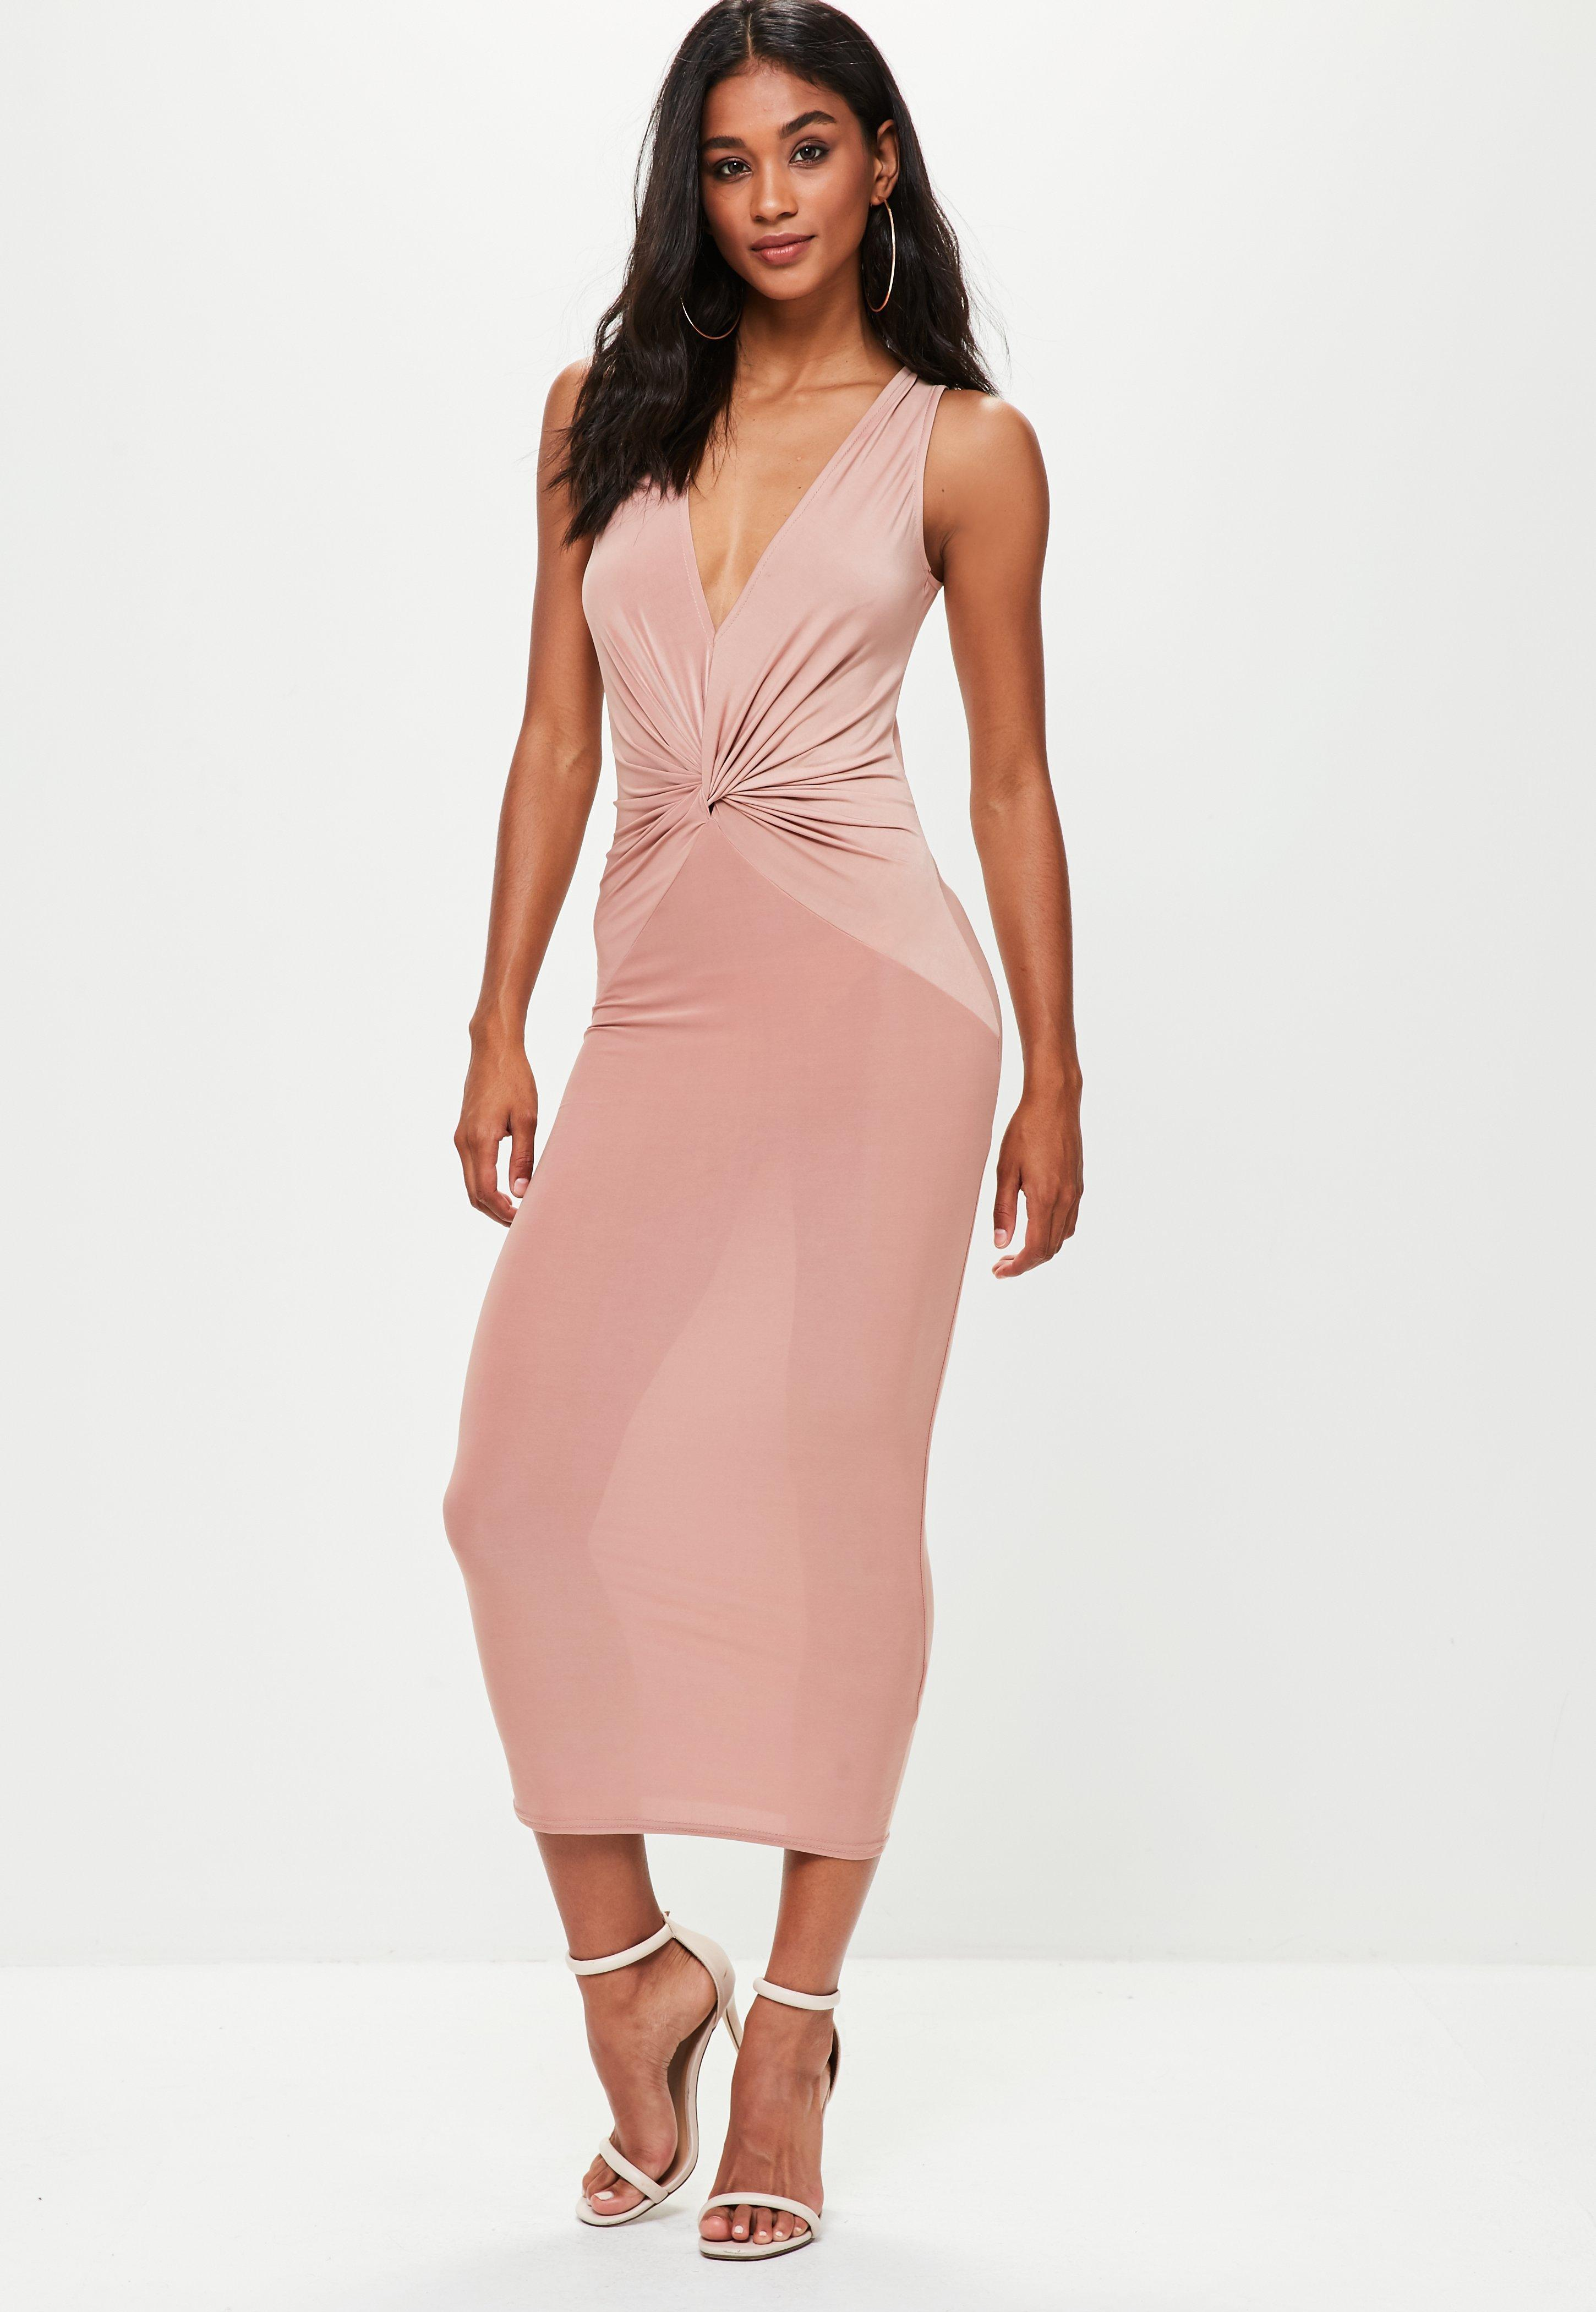 Discount Top Quality Outlet Cheap Price Missguided Pink Plunge Slinky Knot Front Dress Clearance With Paypal w2gPJ3XdV